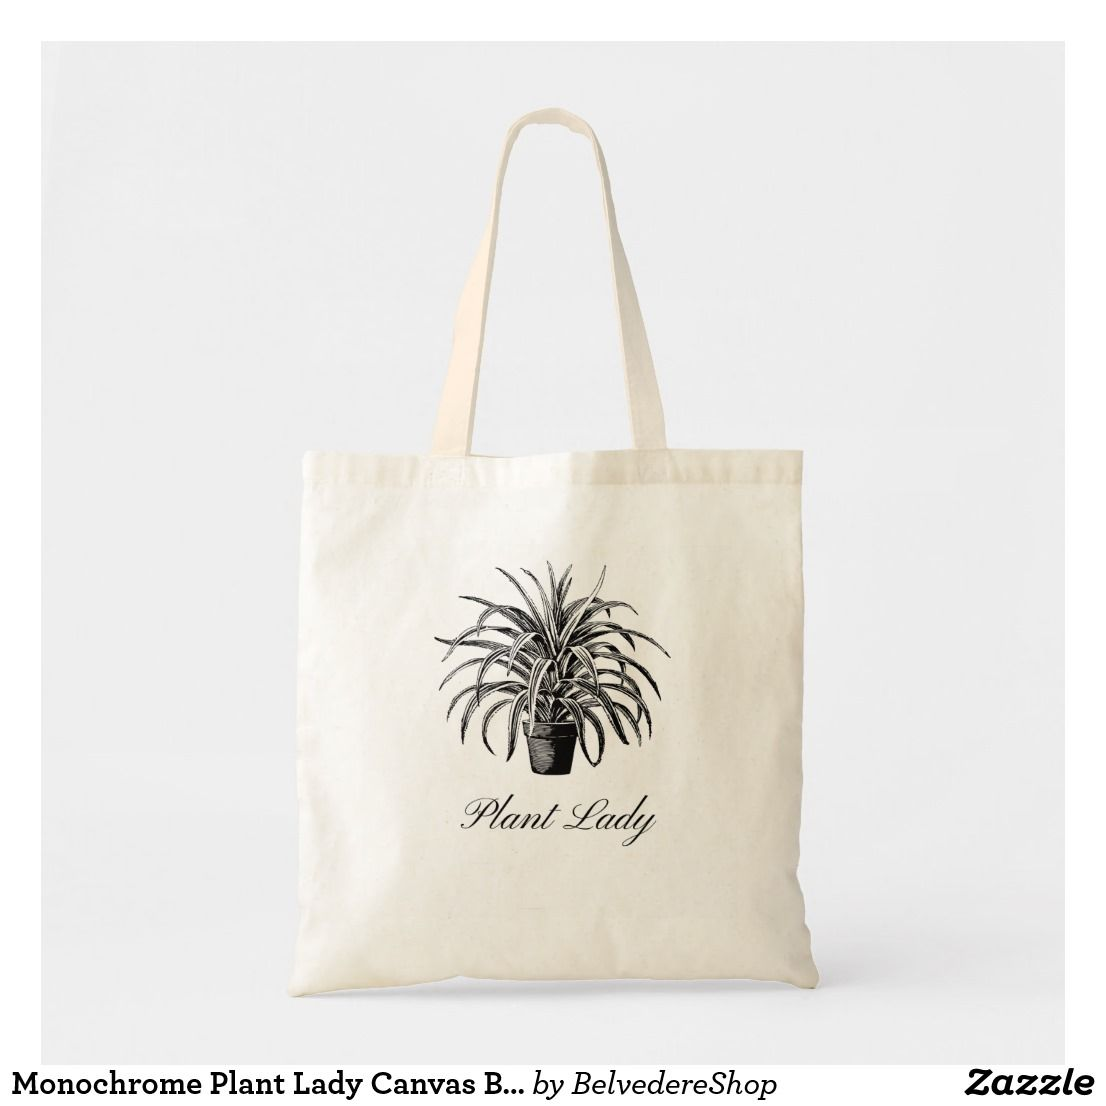 Monochrome Plant Lady Canvas Tote Bag Zazzle Com In 2020 Tote Bag Bags Tote